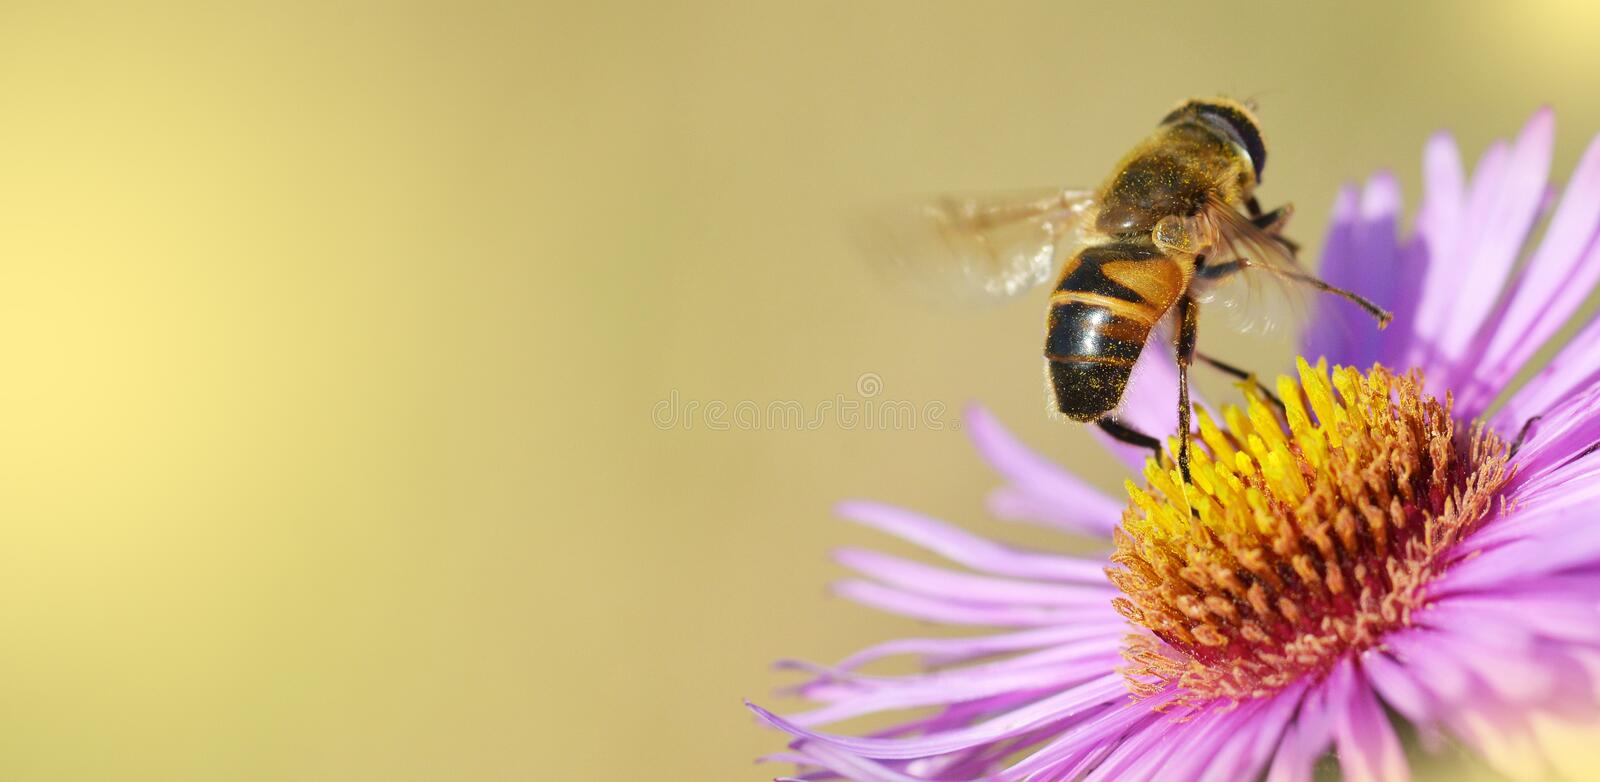 Honey Bee on a Flower stock images